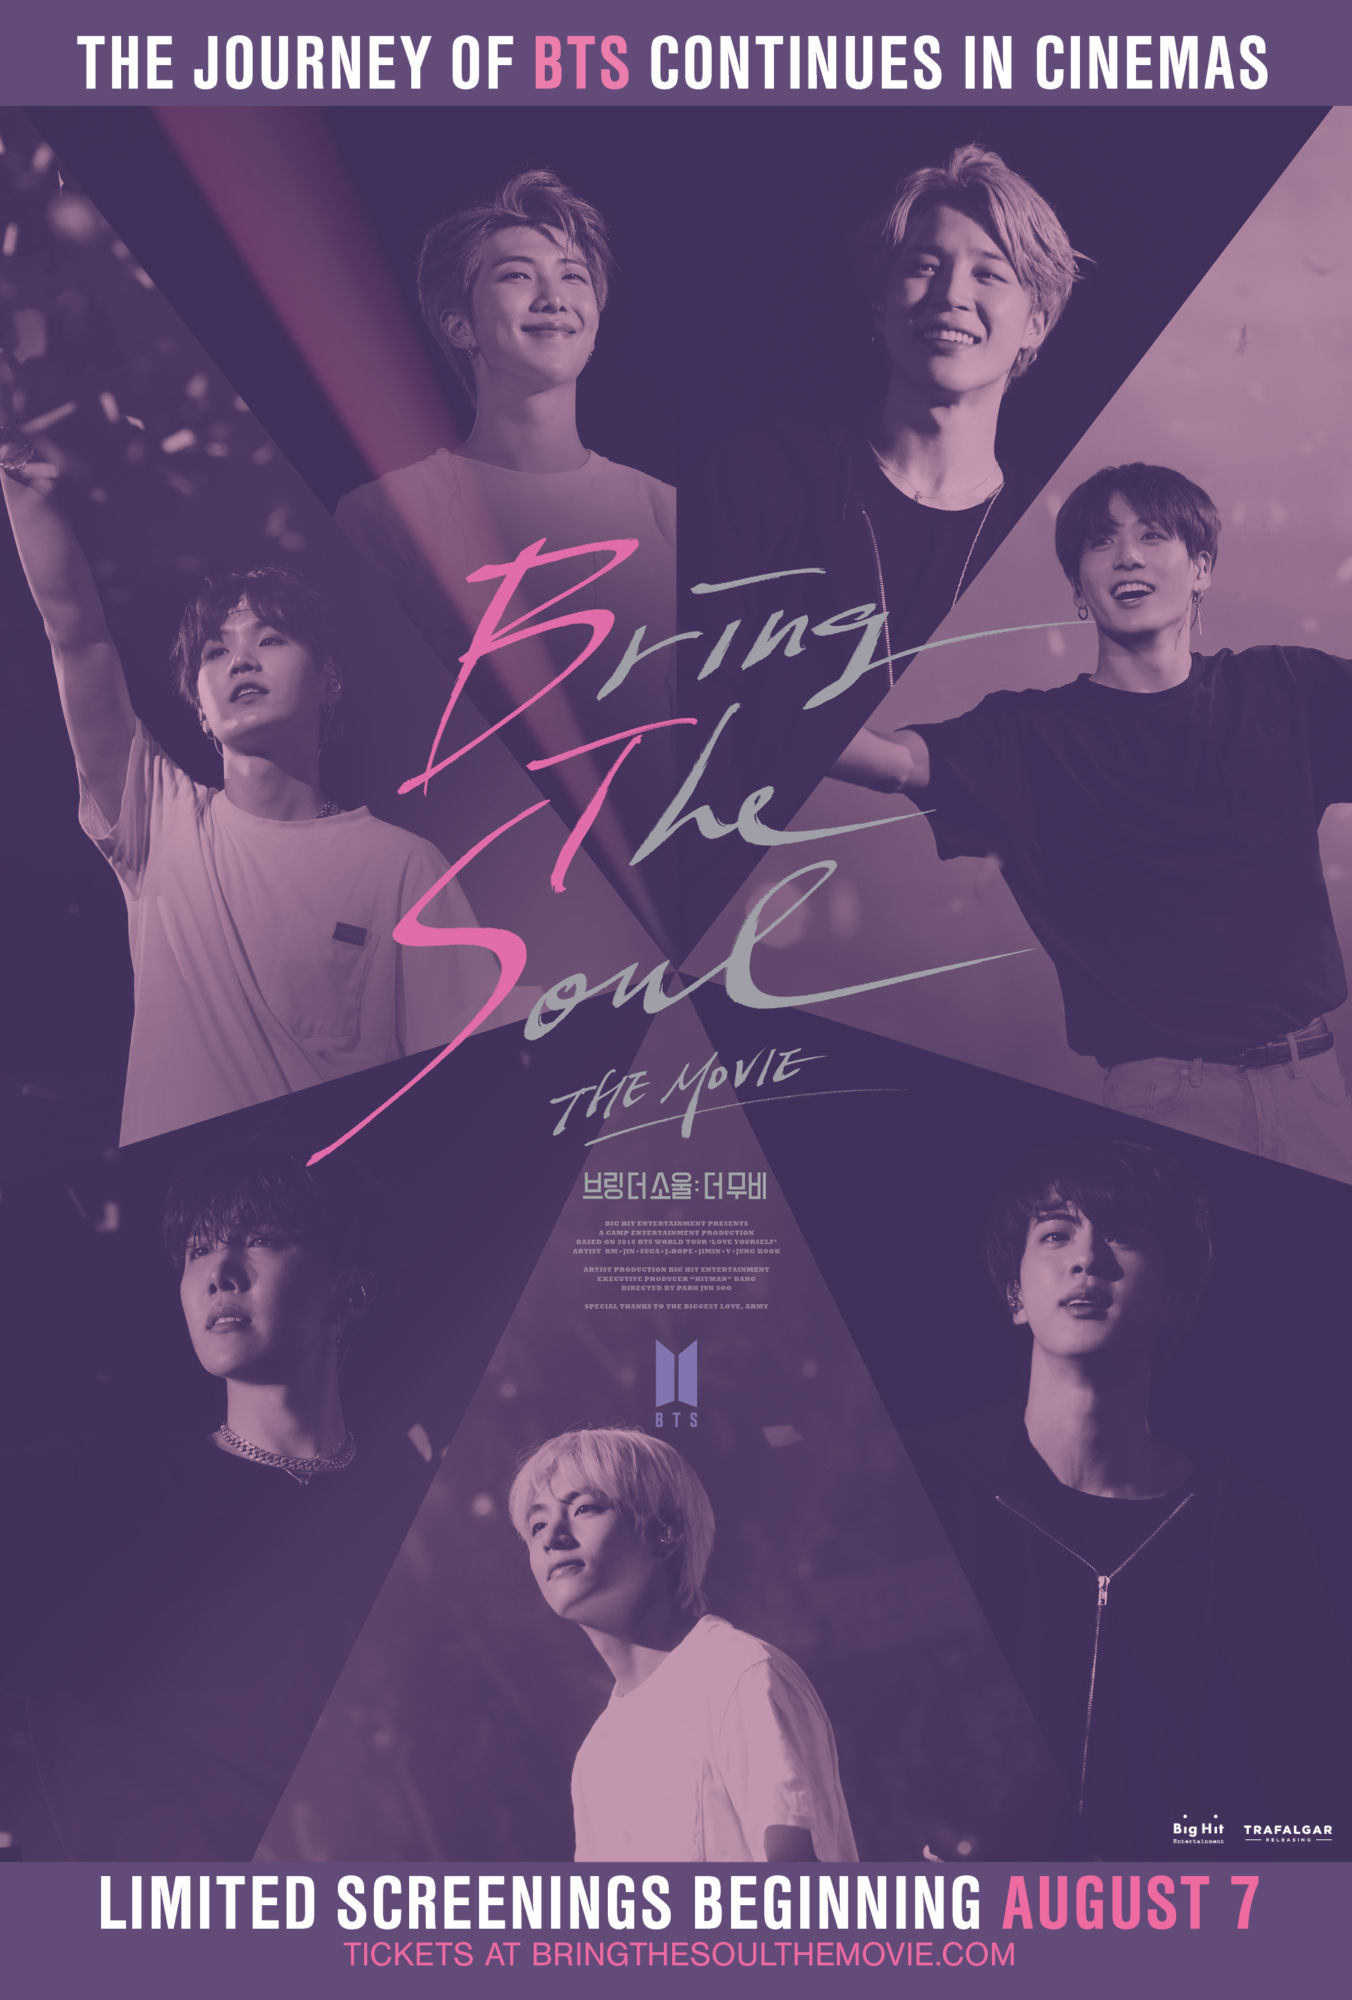 BTS' New Film, Bring The Soul: The Movie Launches Globally on August 7th